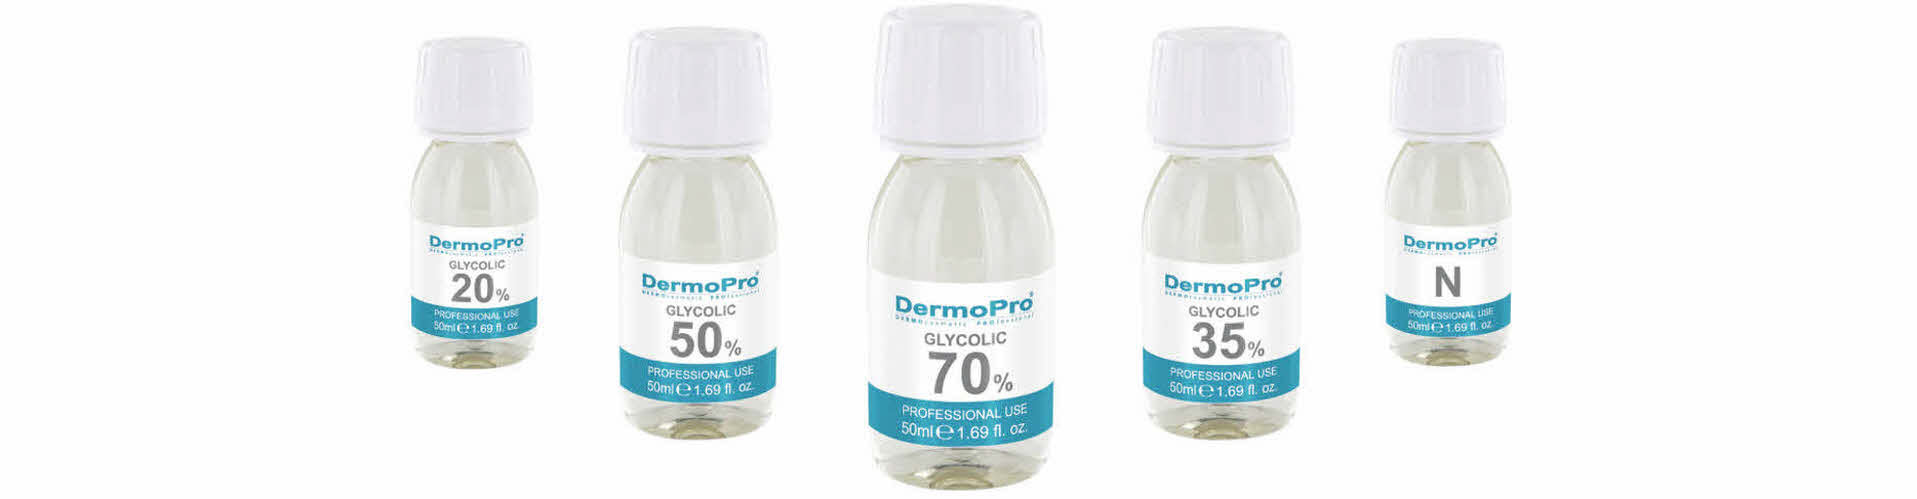 Who uses DermoPro?